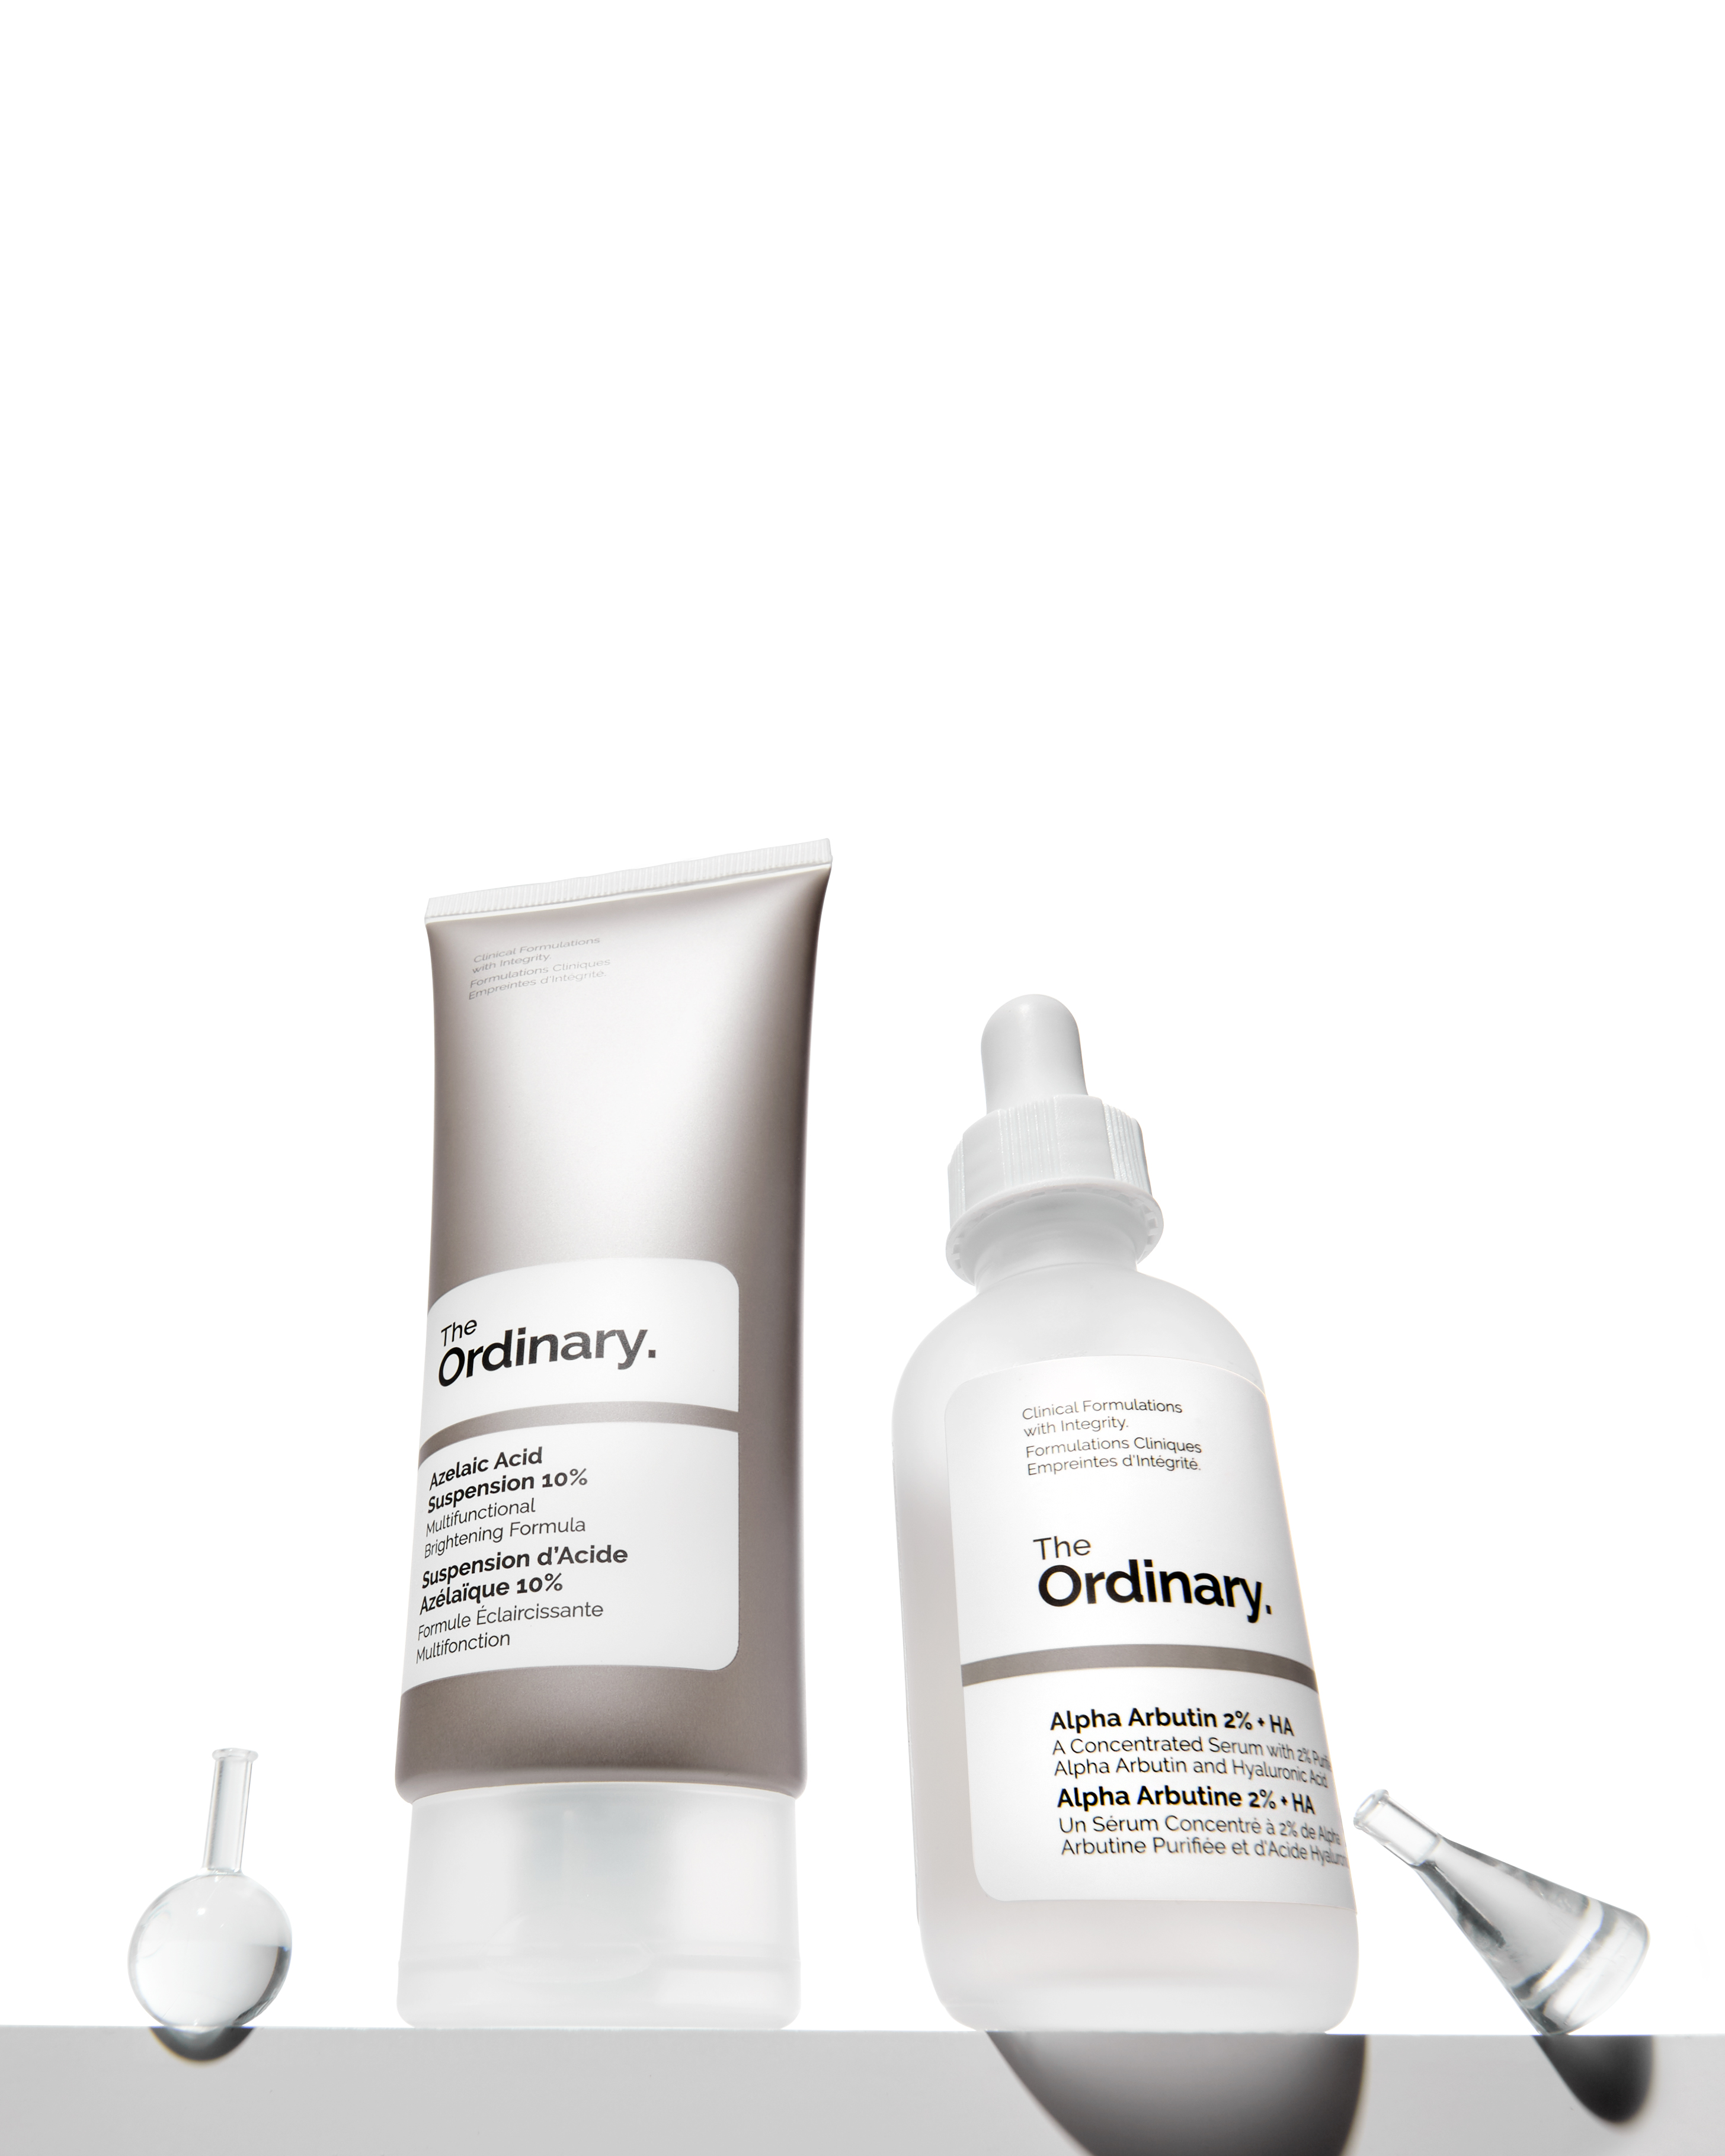 The Ordinary is going into over 430 Sephora doors on July 16.